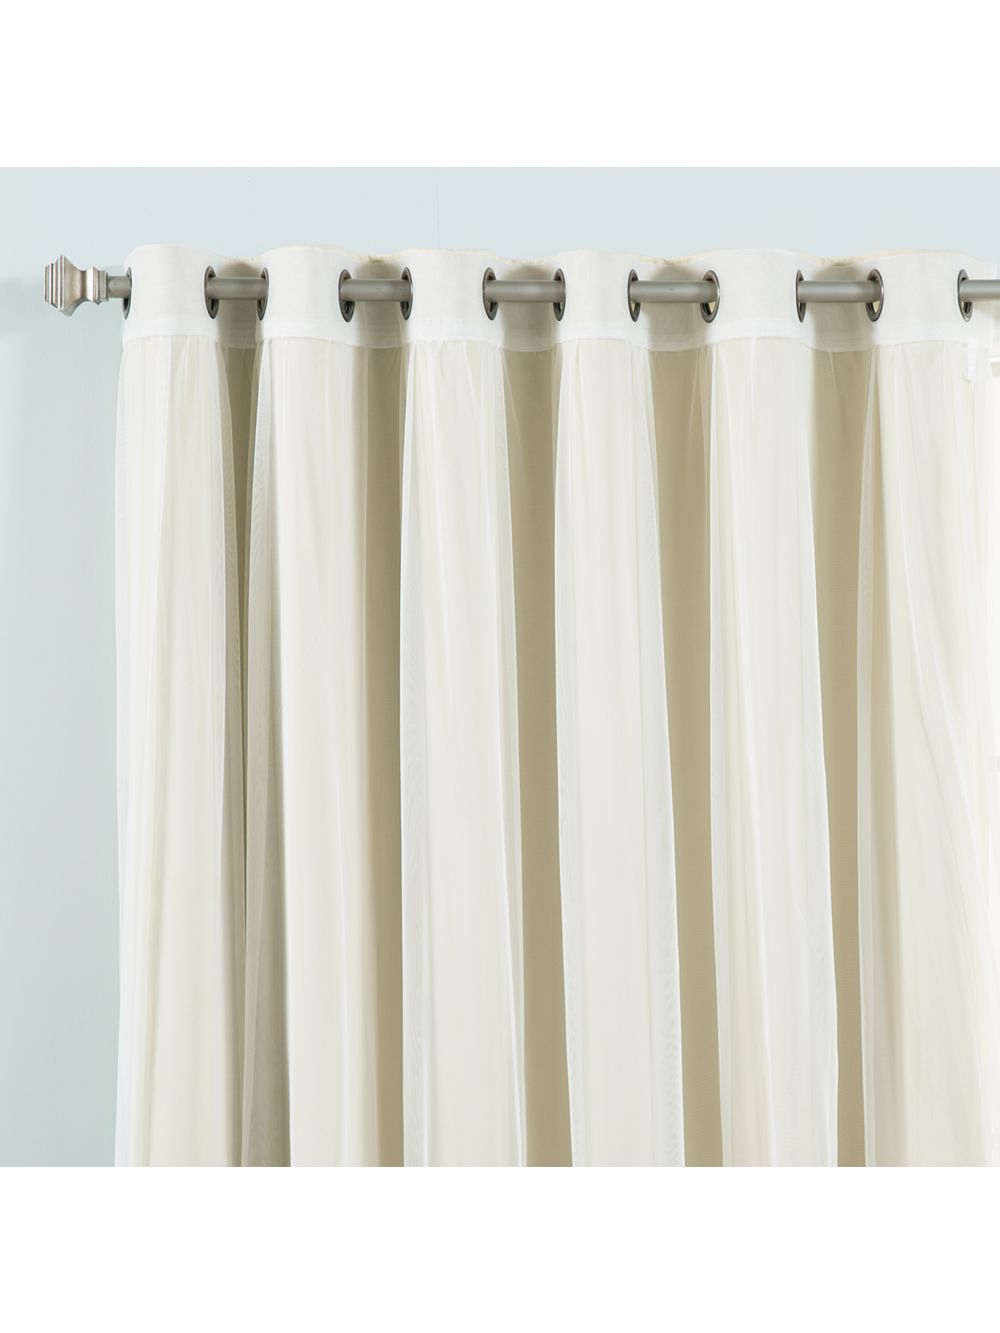 Umixm Wide Tulle & Blackout Curtains - Beige within Mix & Match Blackout Tulle Lace Bronze Grommet Curtain Panel Sets (Image 18 of 20)